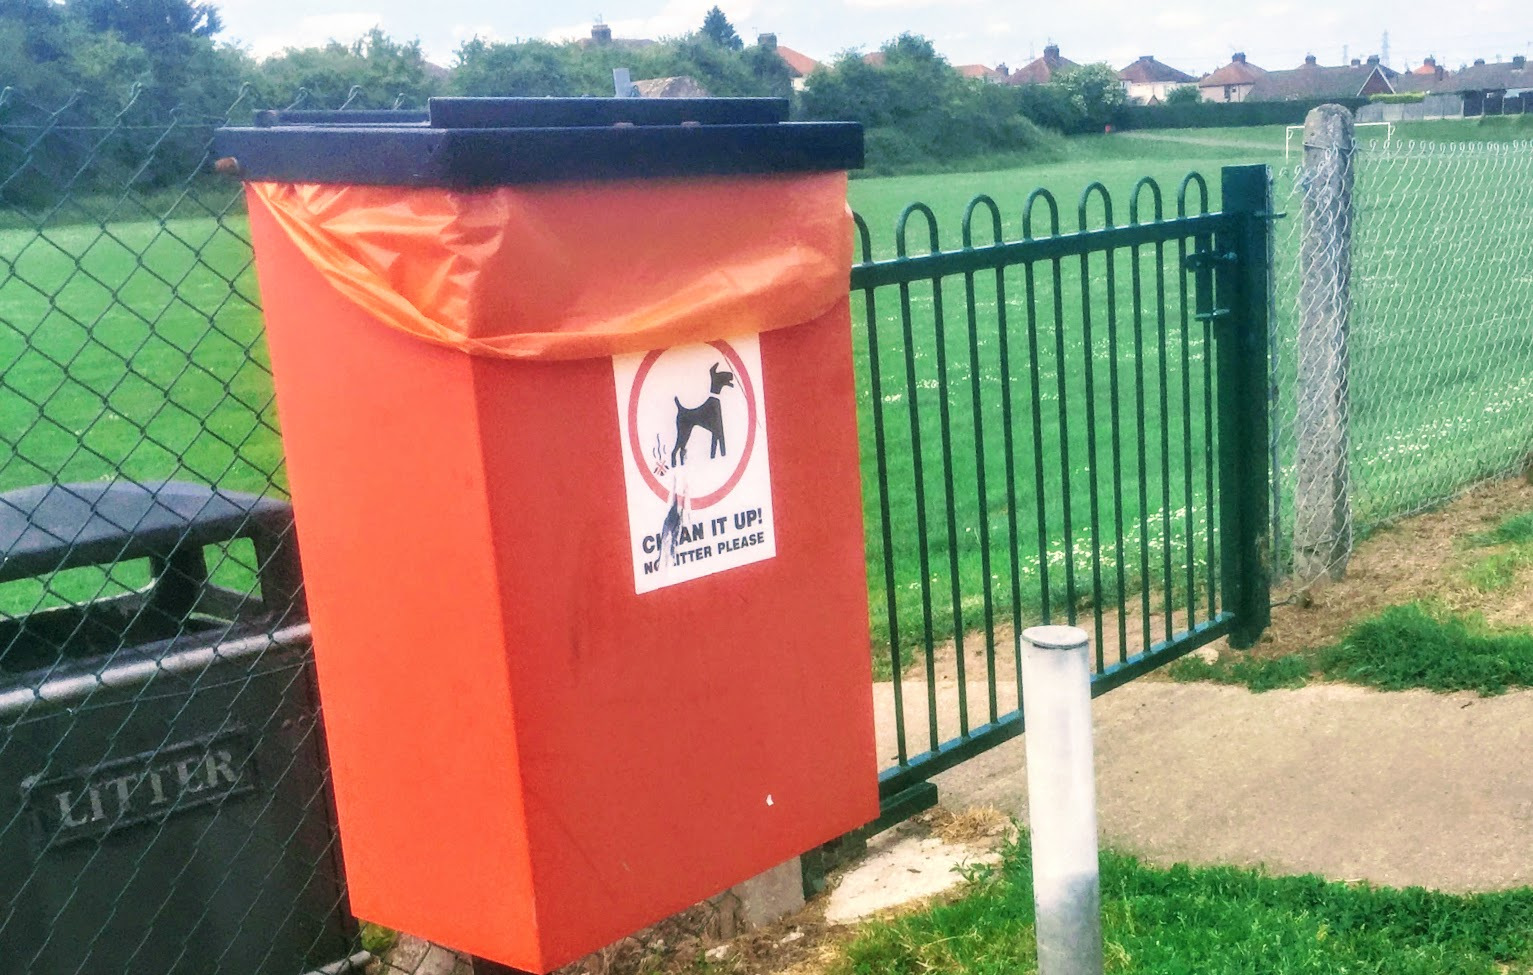 These are the new 'rules' dog walkers will need to follow to avoid a fine in Flintshire